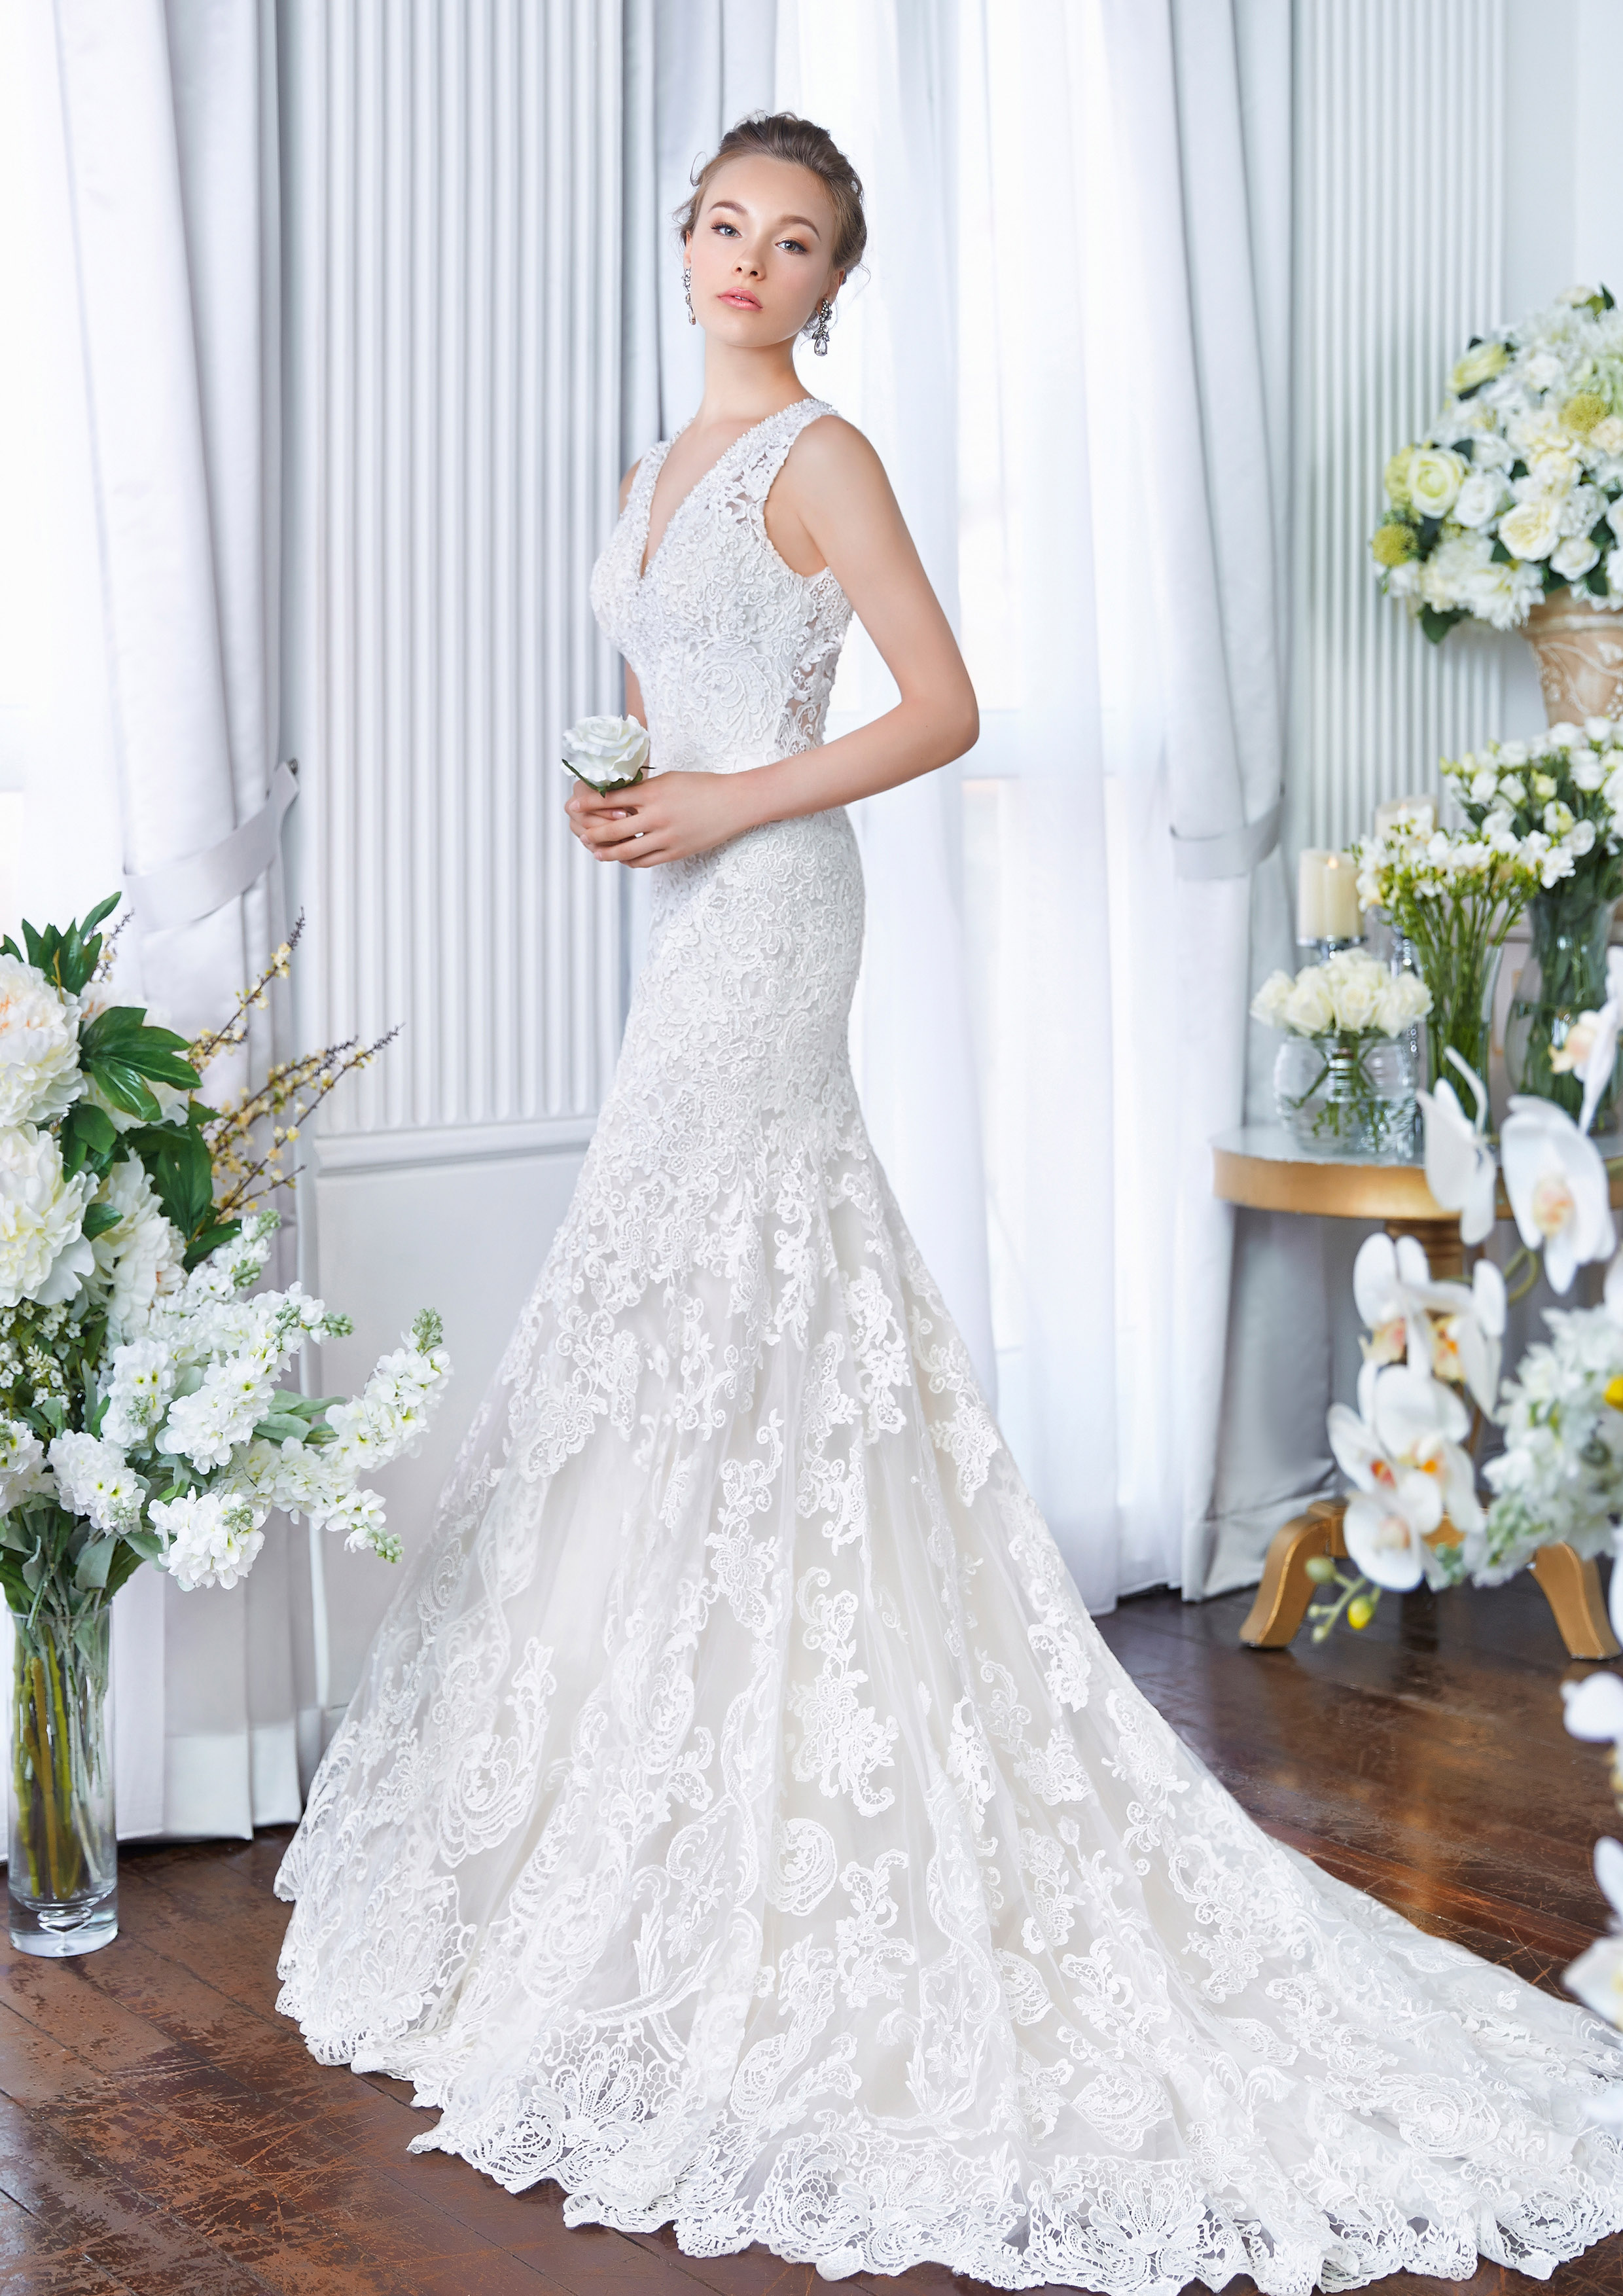 Orchid Wedding Gown Collection by Digio Bridal | Bridestory.com